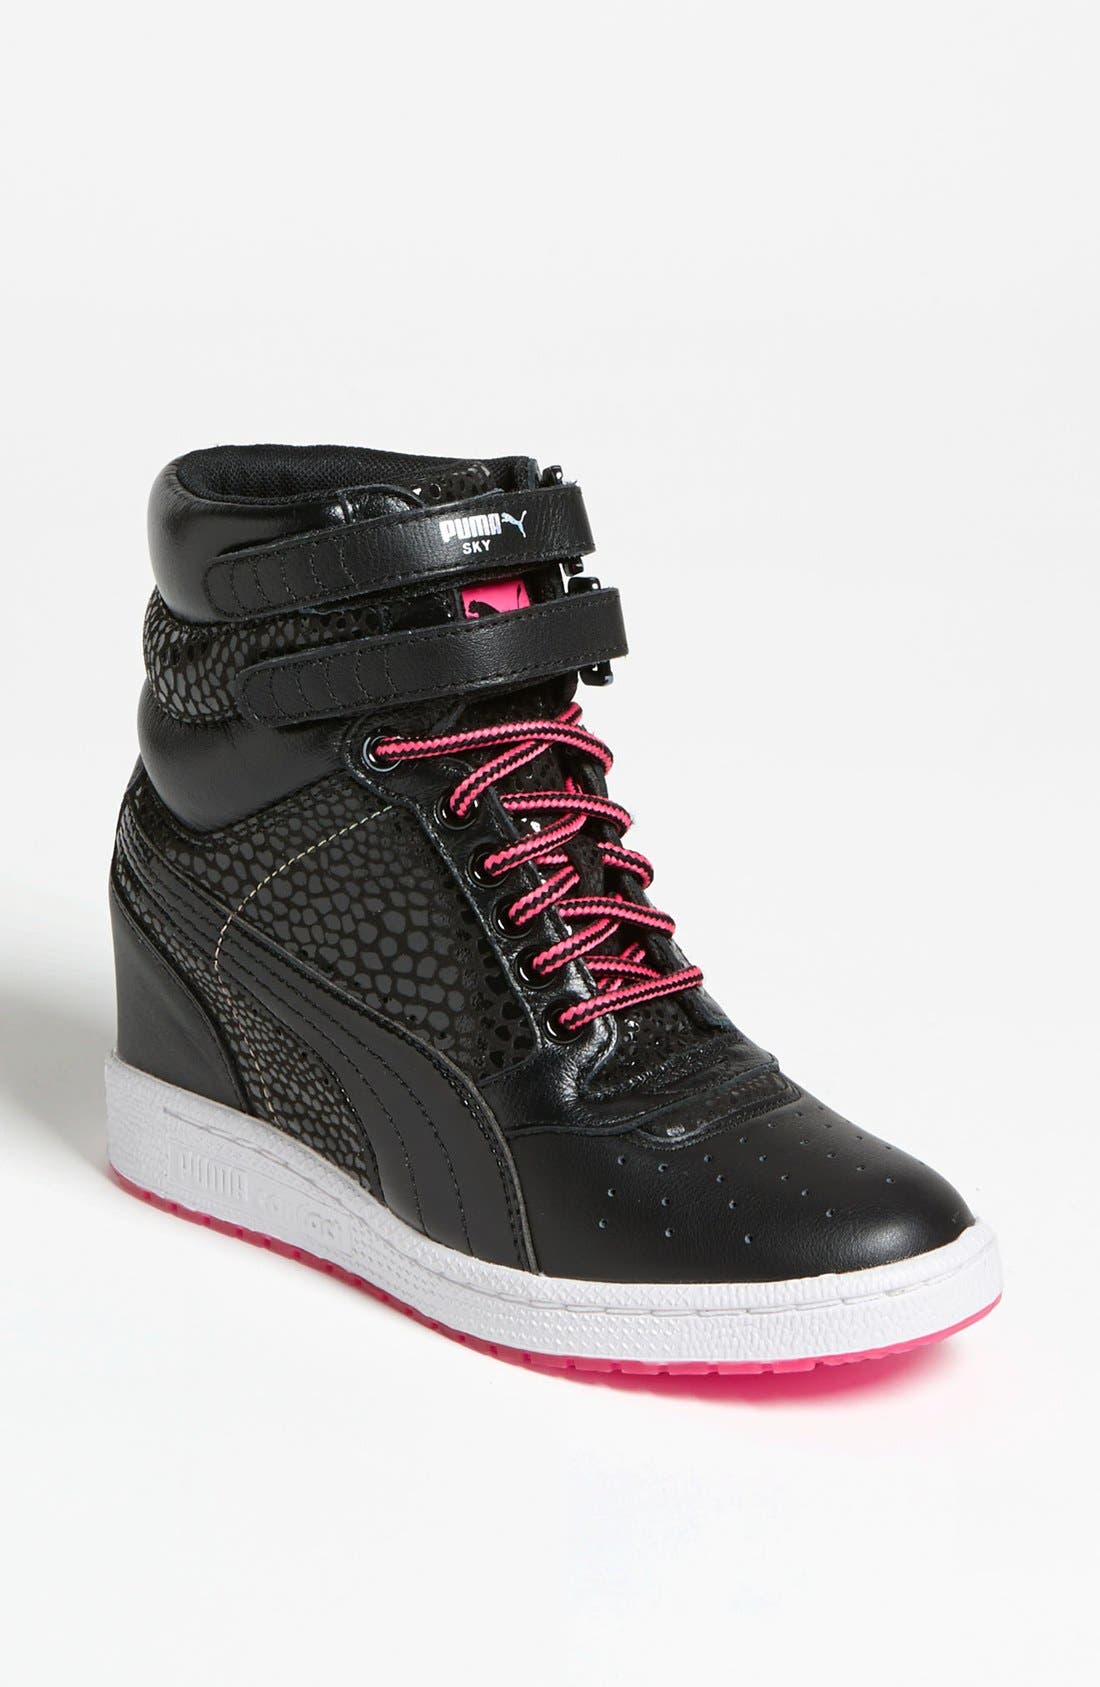 Main Image - PUMA 'Sky Wedge' Sneaker (Women)